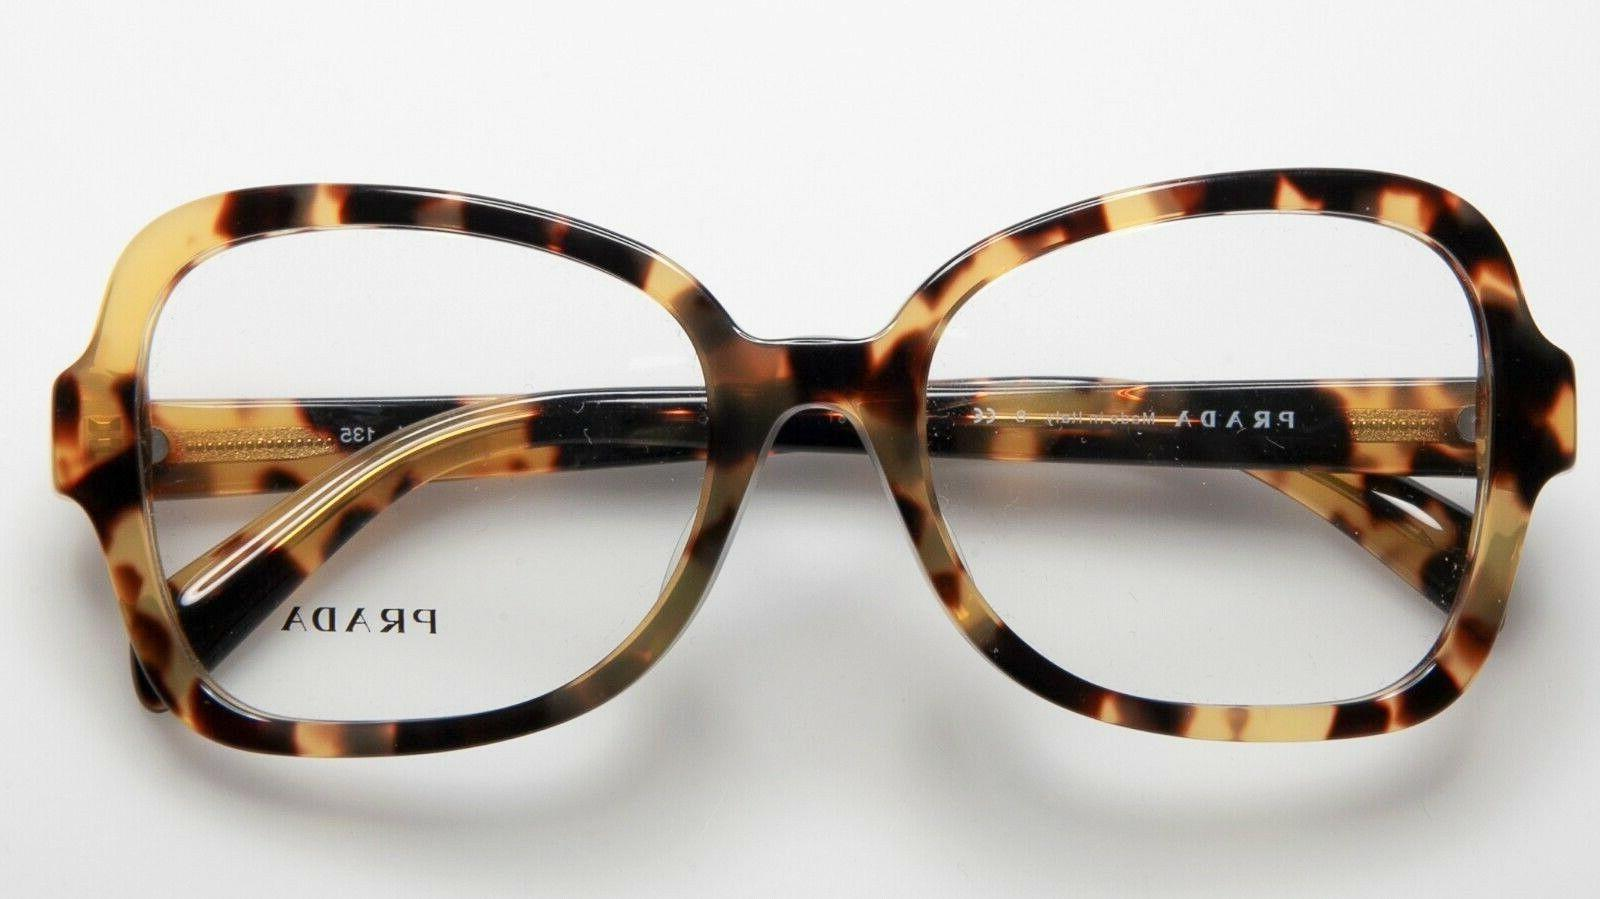 PRADA 25S 7S0-1O1 Glasses Yellow Spotted Havana 53mm Fit